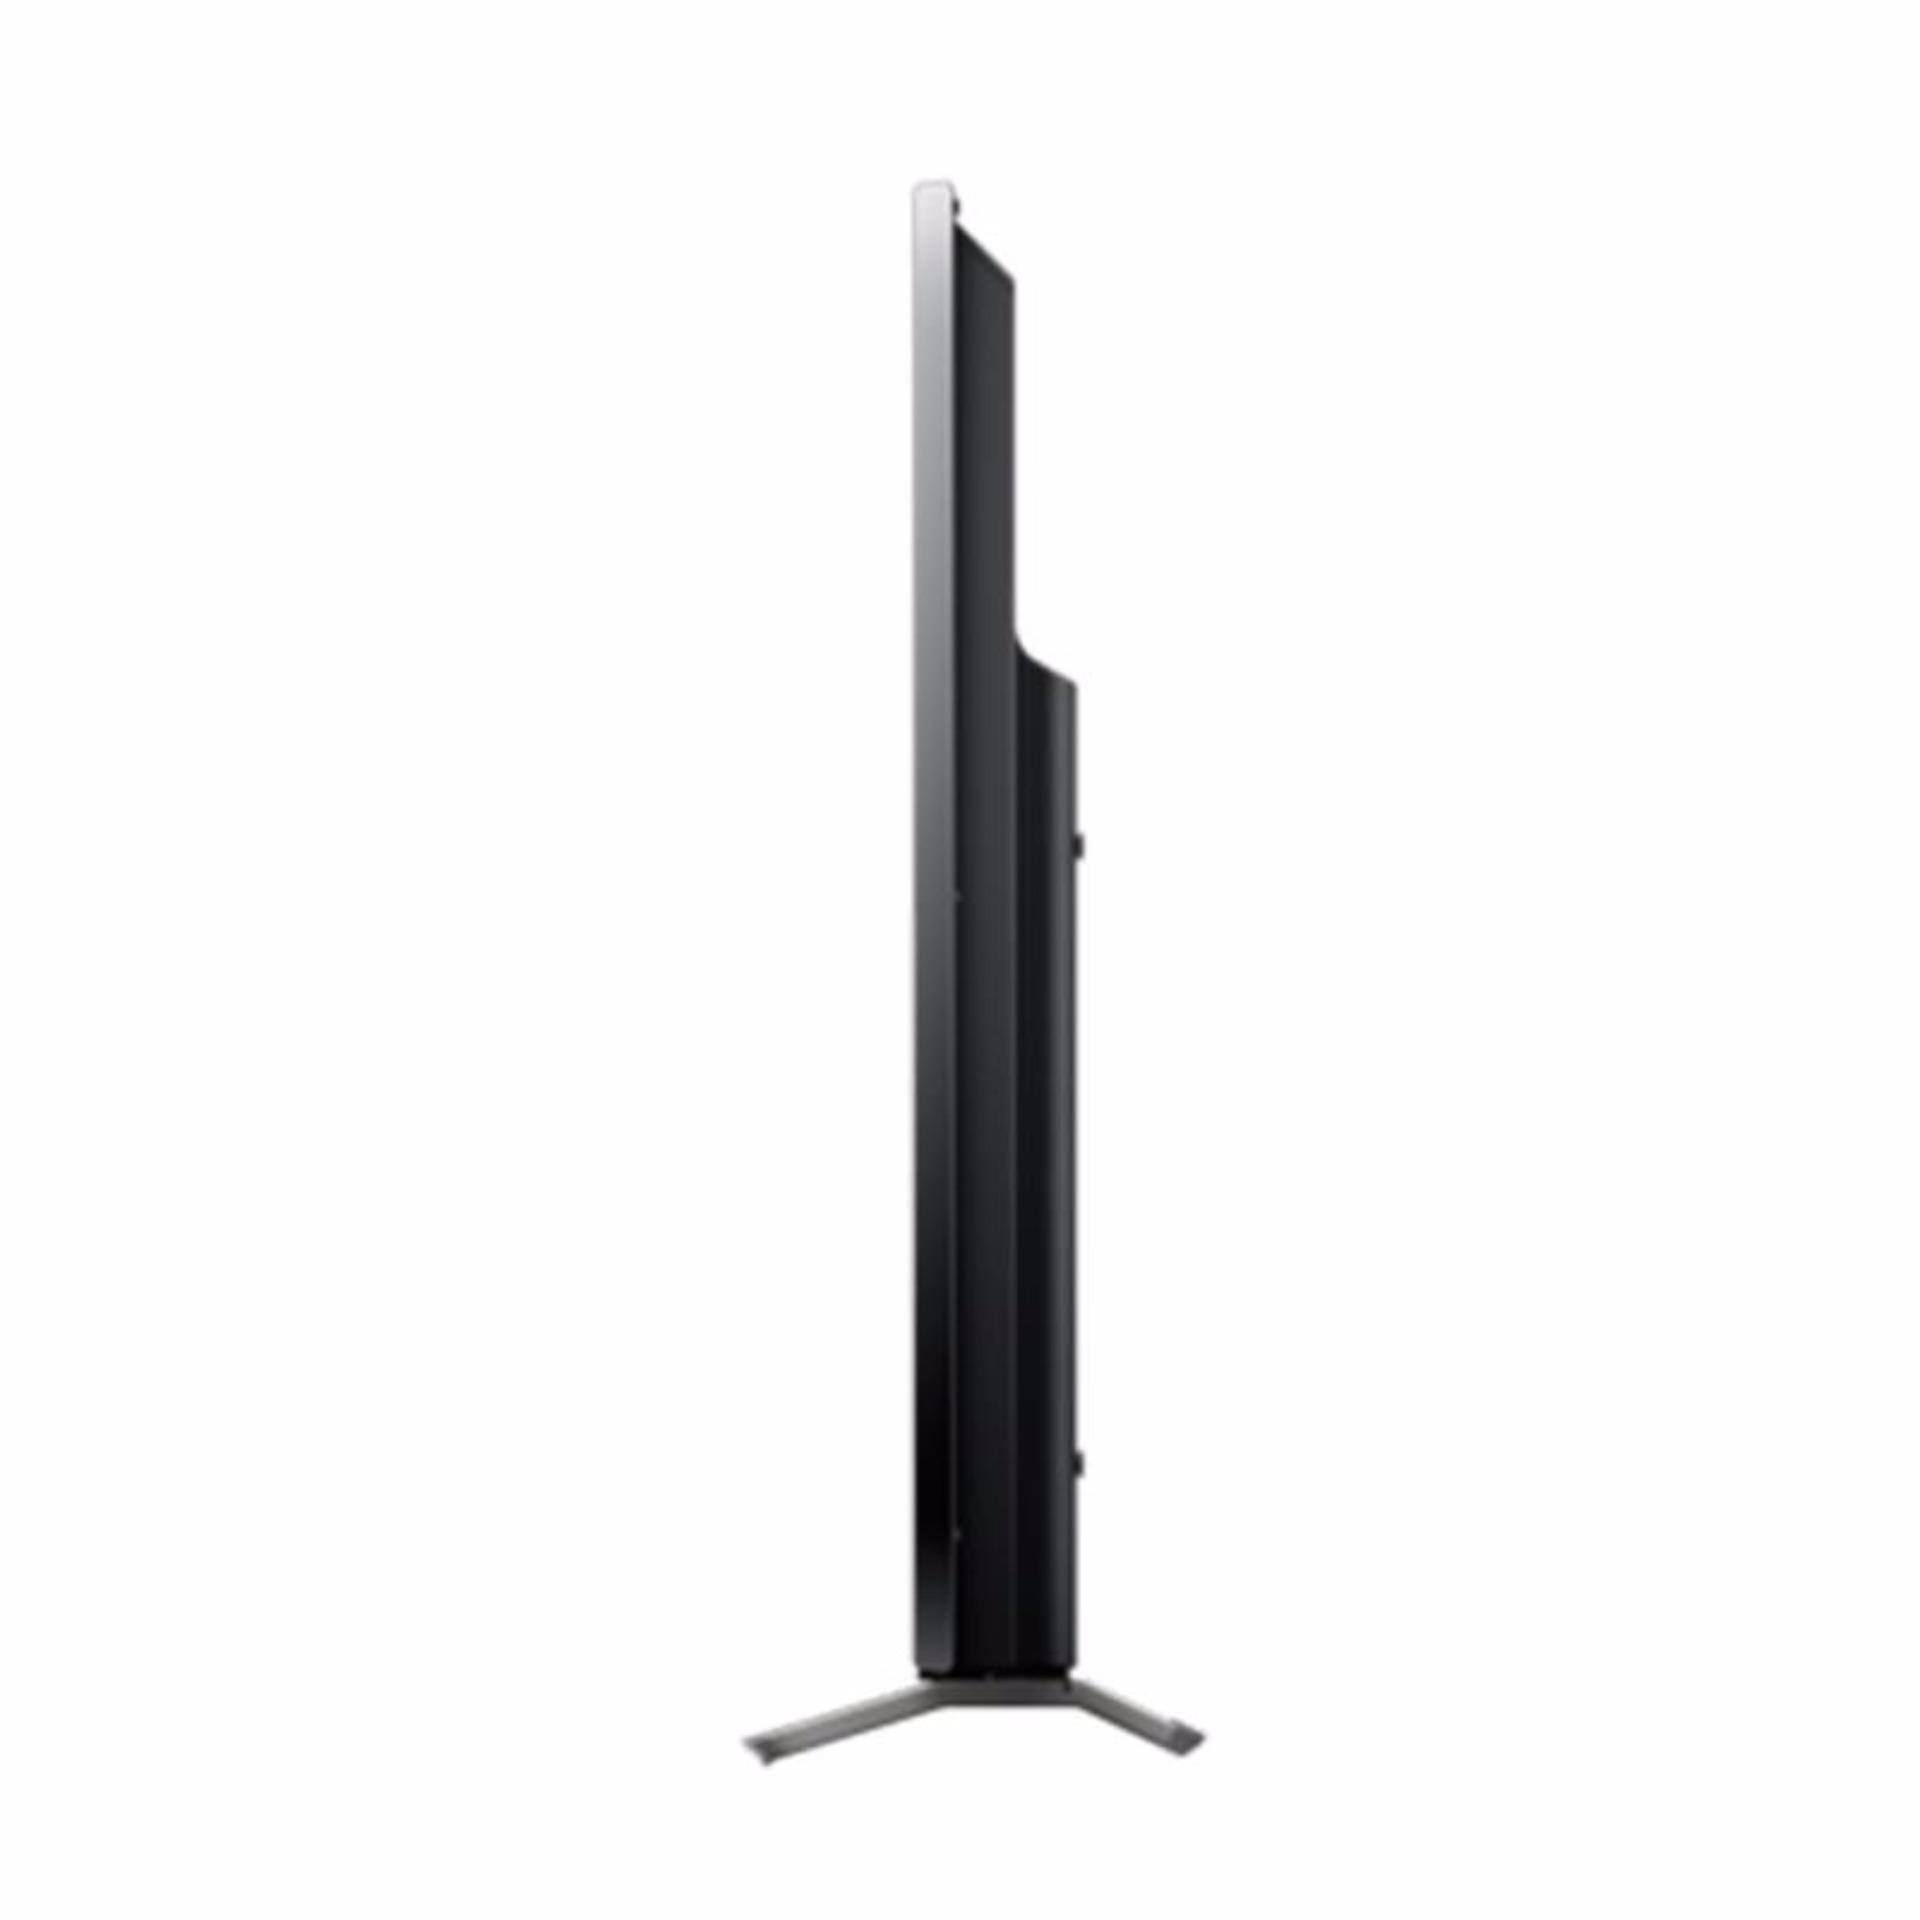 SONY KDL 49X7000E TV LED [UHD/ Smart TV] .